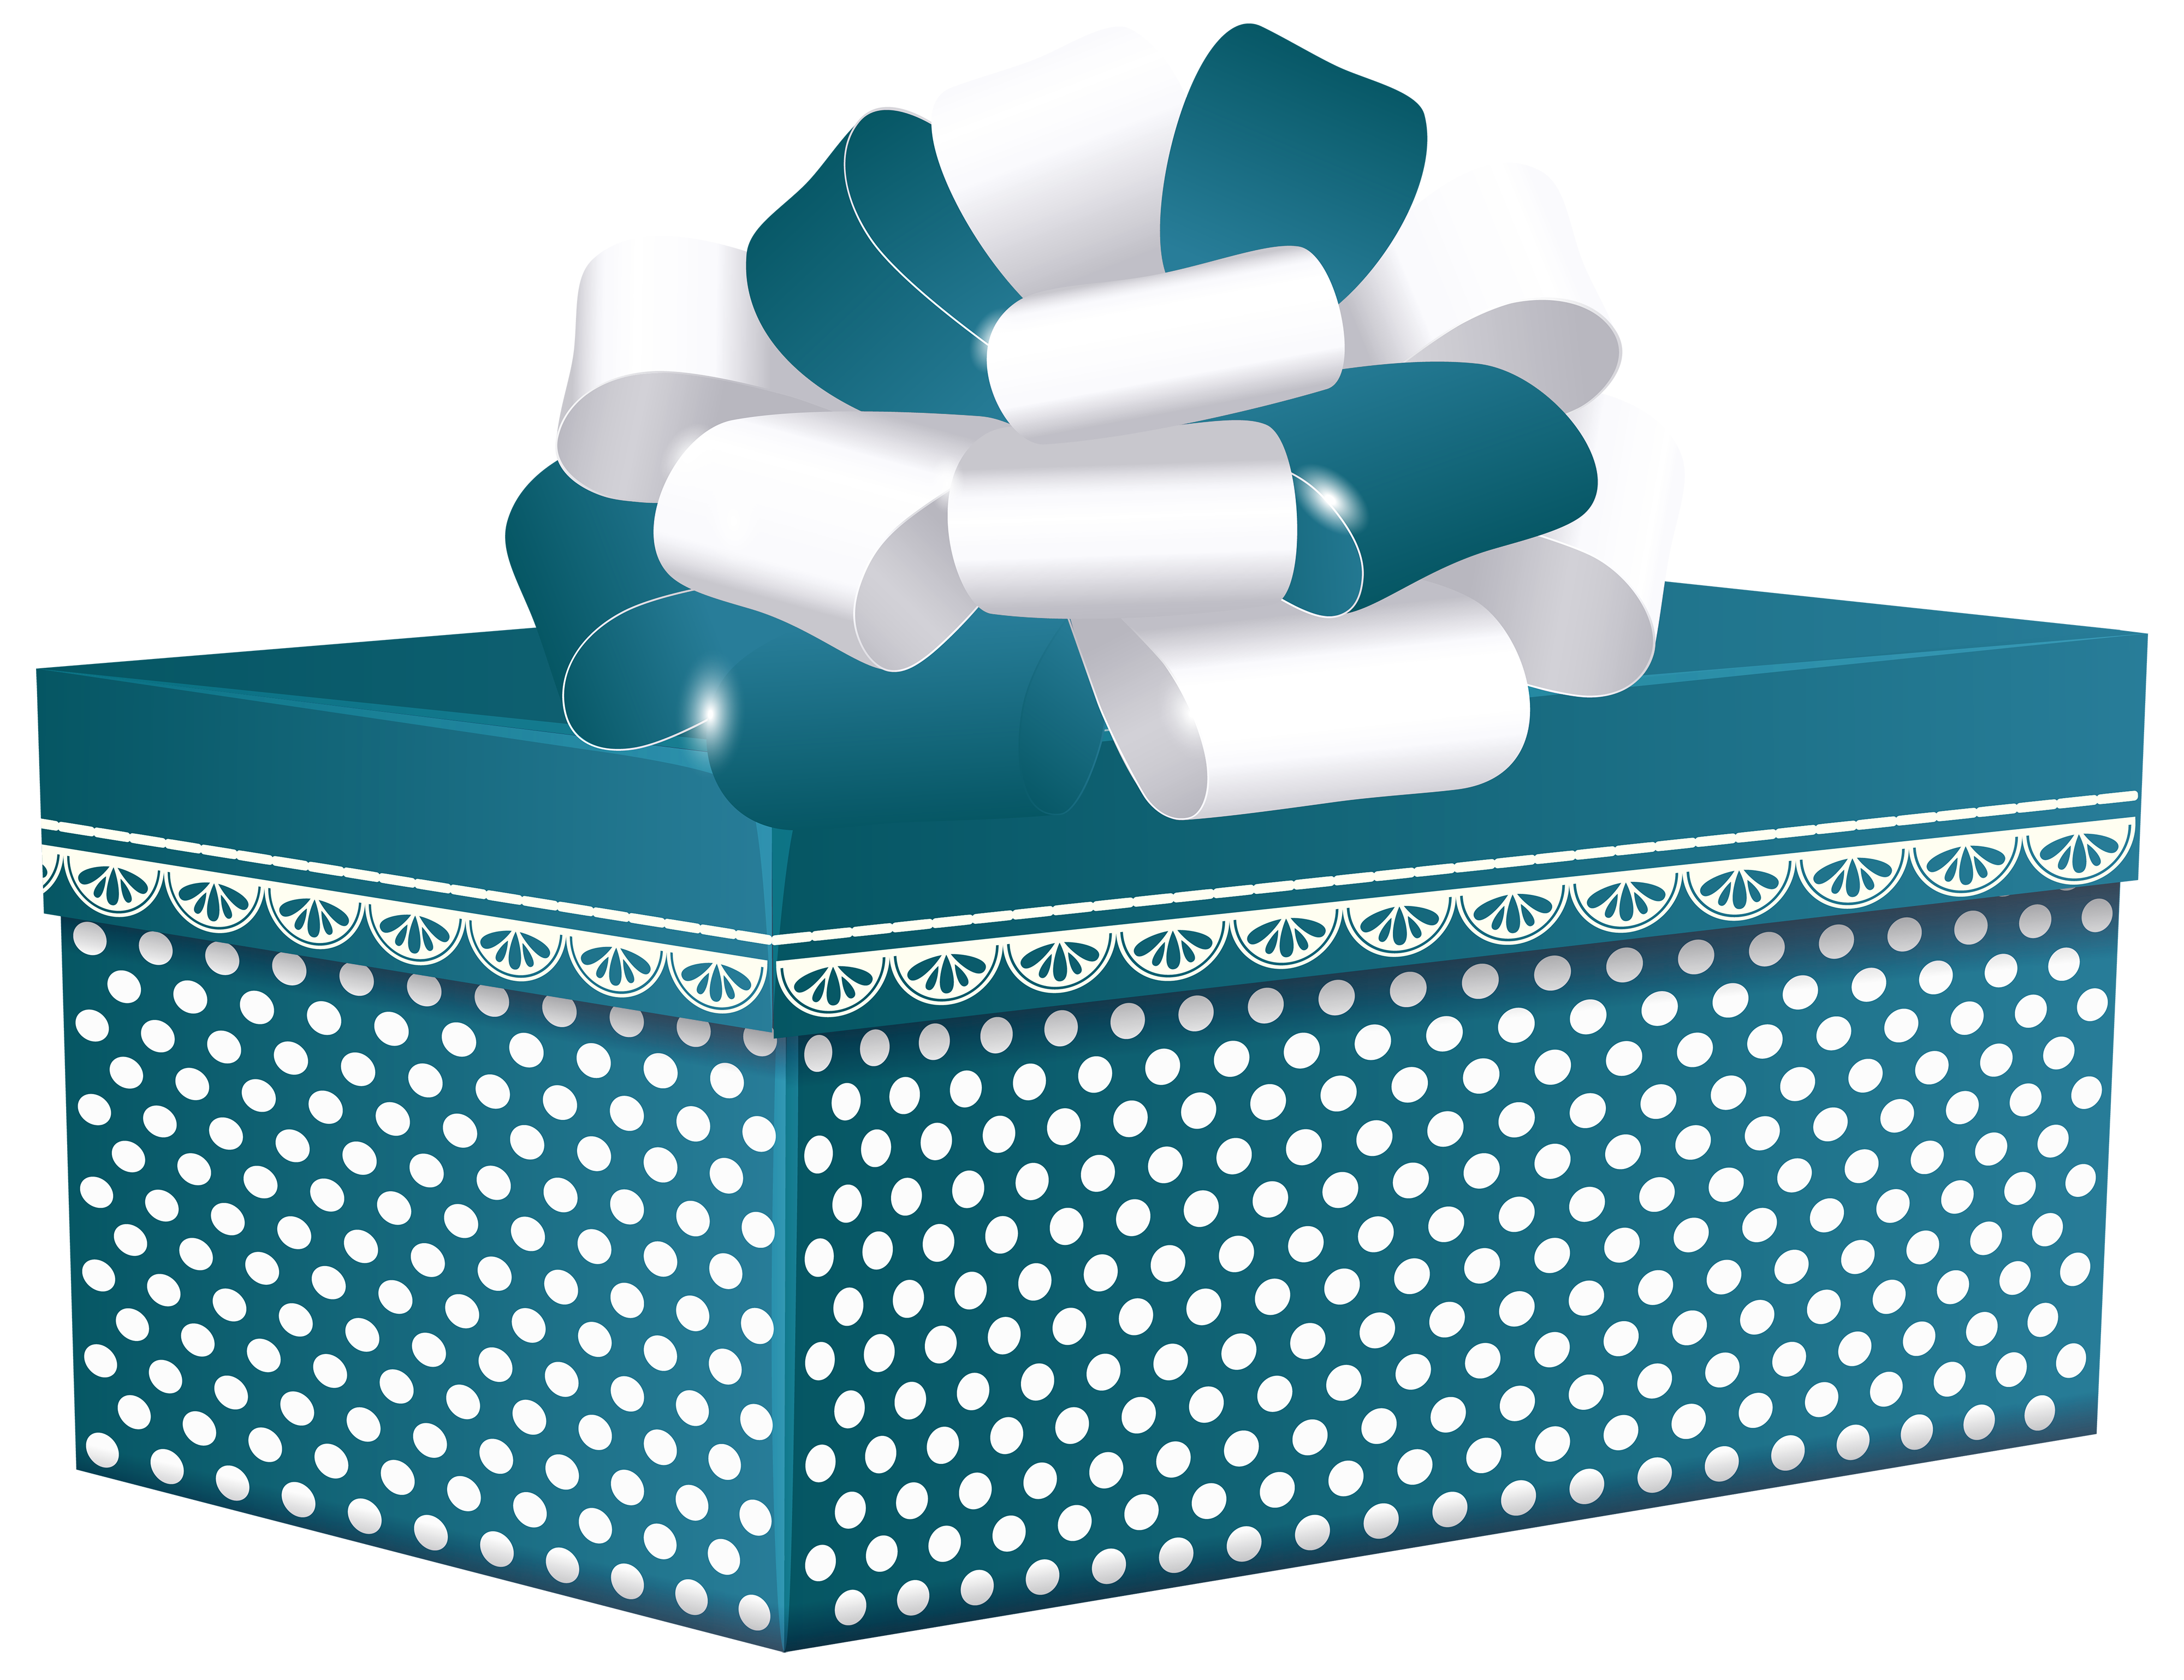 Door clipart rectangle. Blue dotted gift box